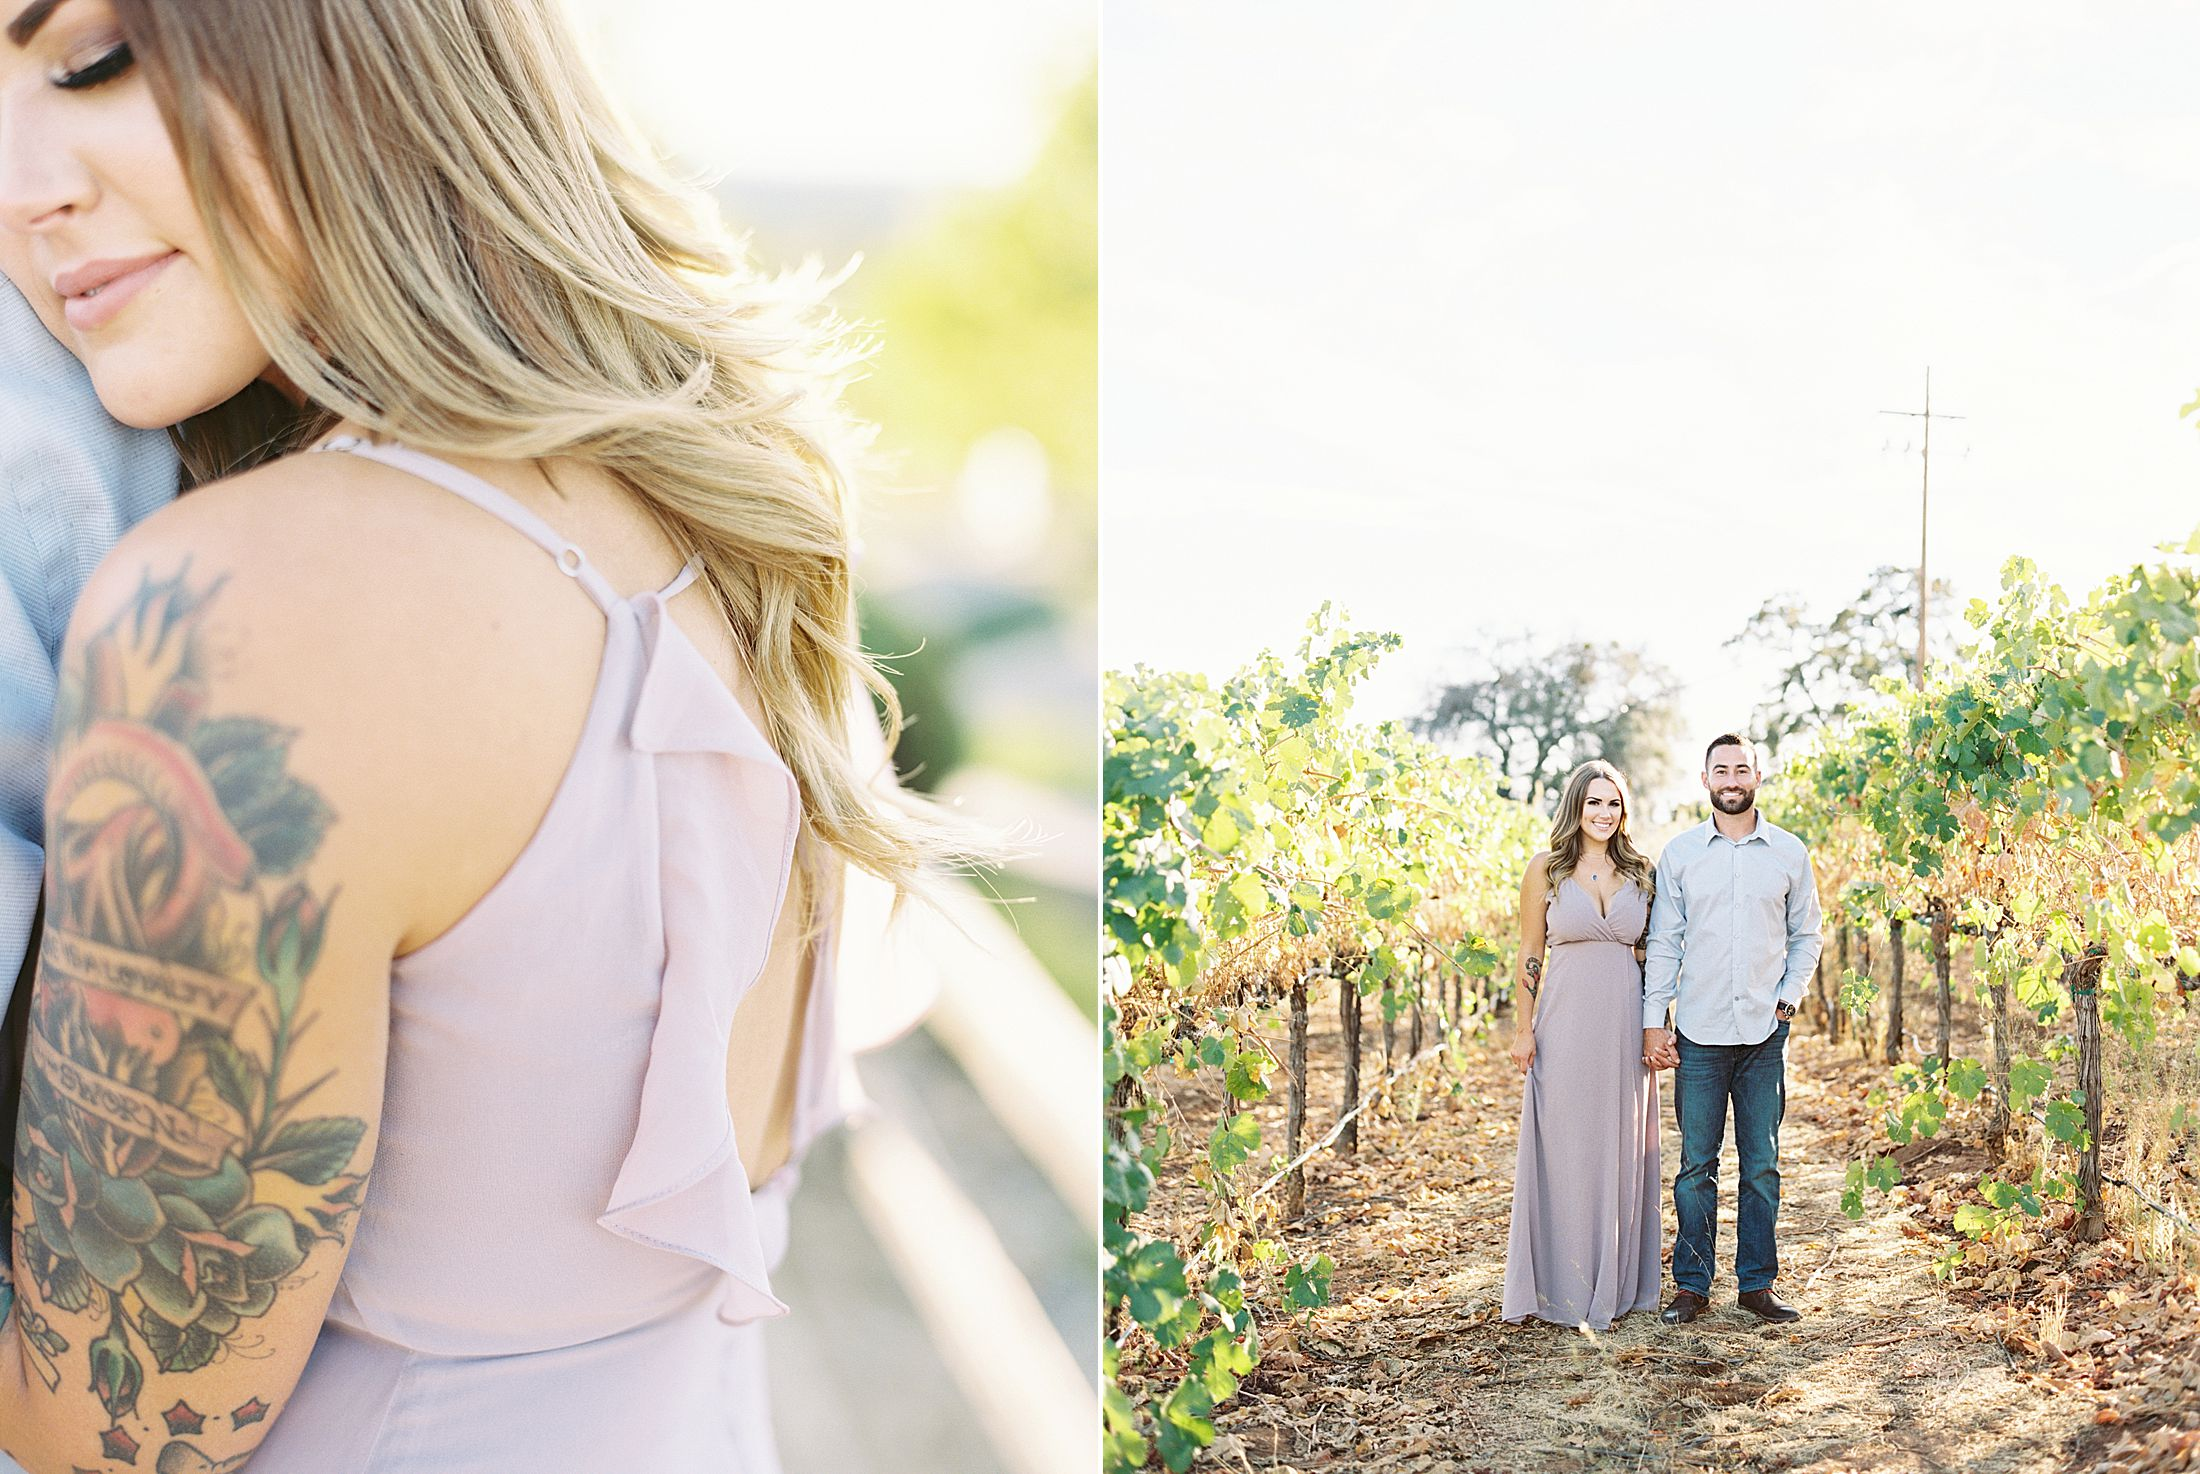 Helwig Winery Engagement Session - Steffanie and Rich - Jenn Robirds Events - Ashley Baumgartner - Sacramento Wedding Photographer - Private Estate Wedding Photographer - Helwig WInery Wedding_0087.jpg